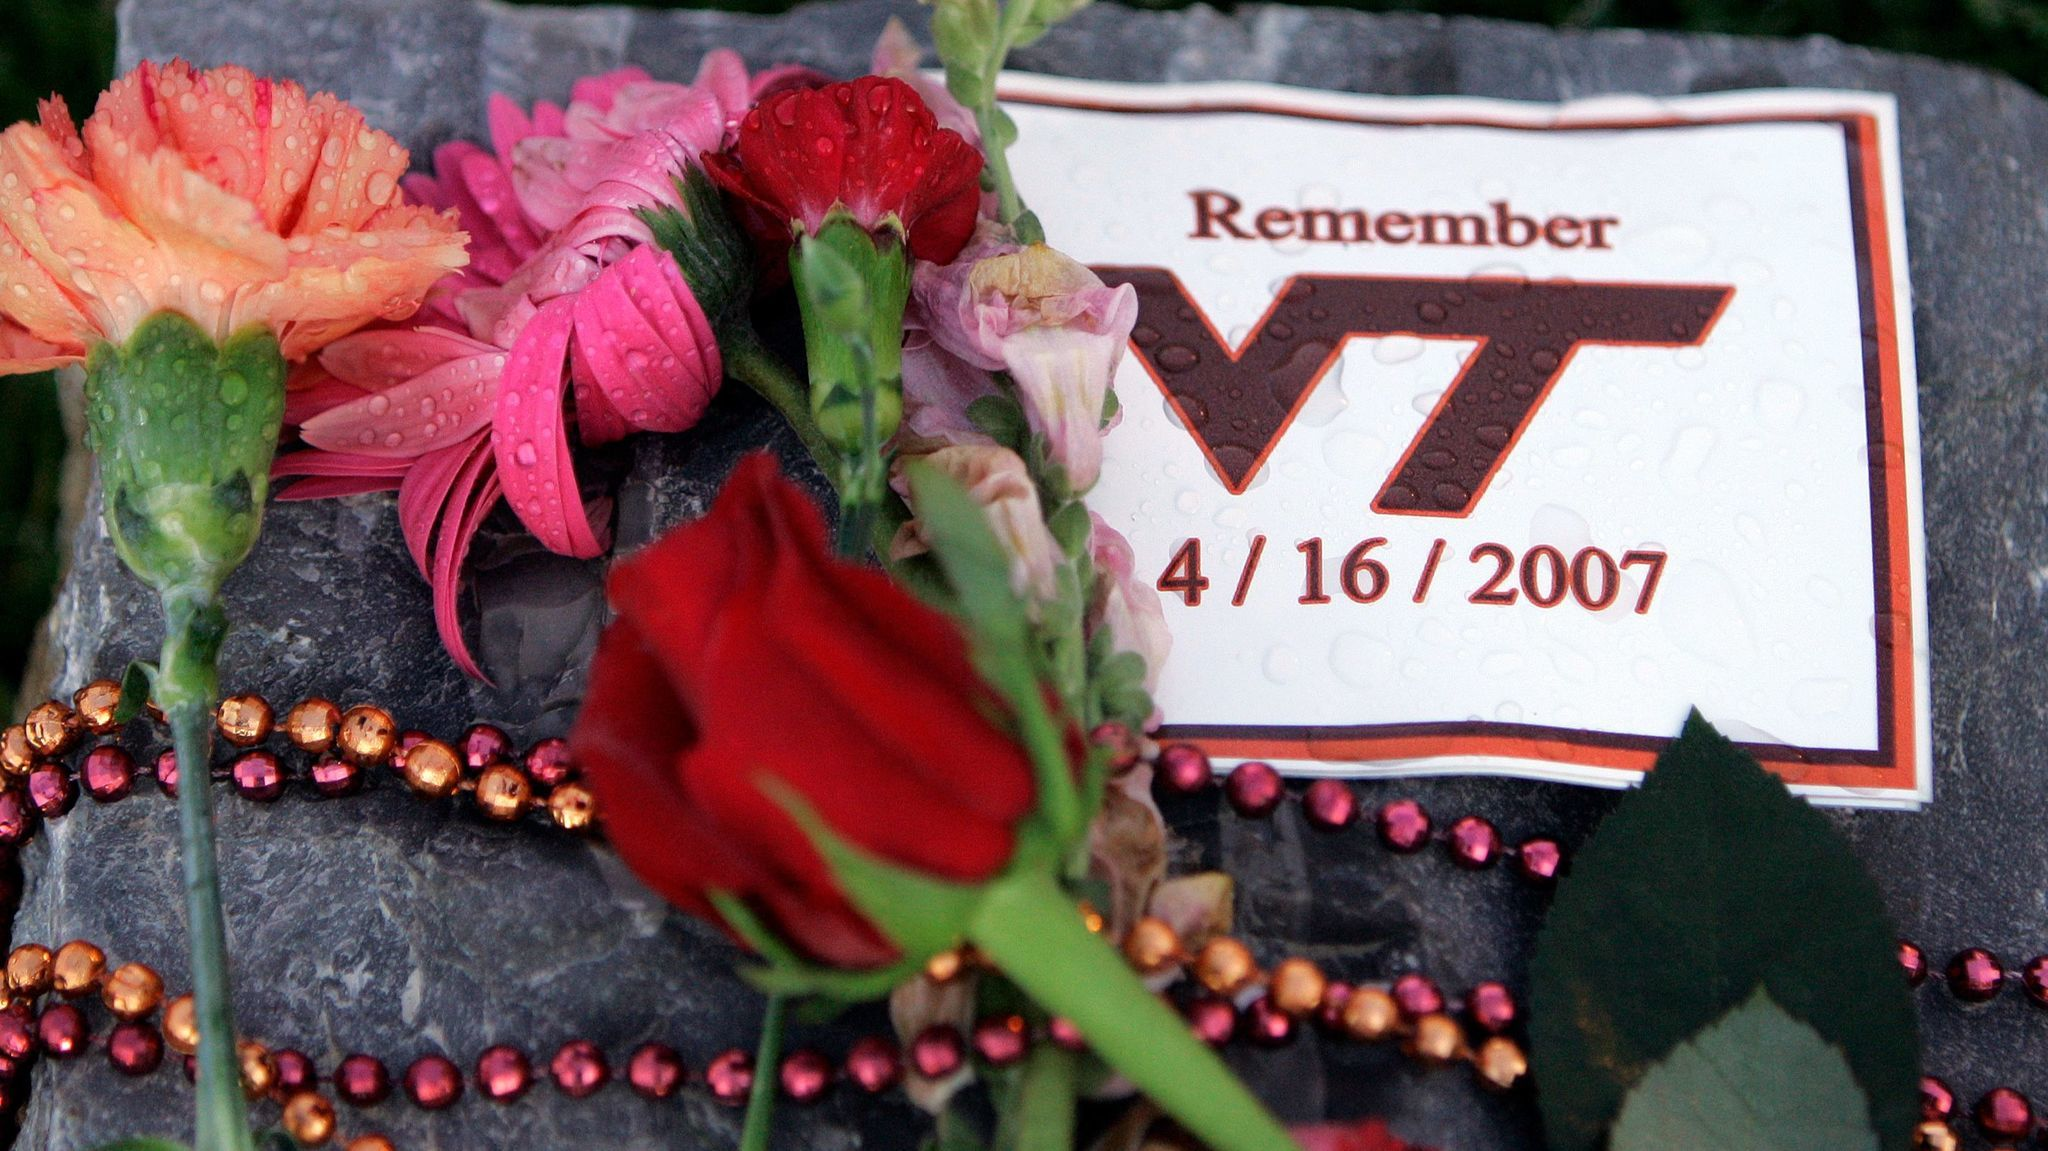 A makeshift memorial on the Virginia Tech campus honors the 32 victims killed in a shooting rampage in 2007.